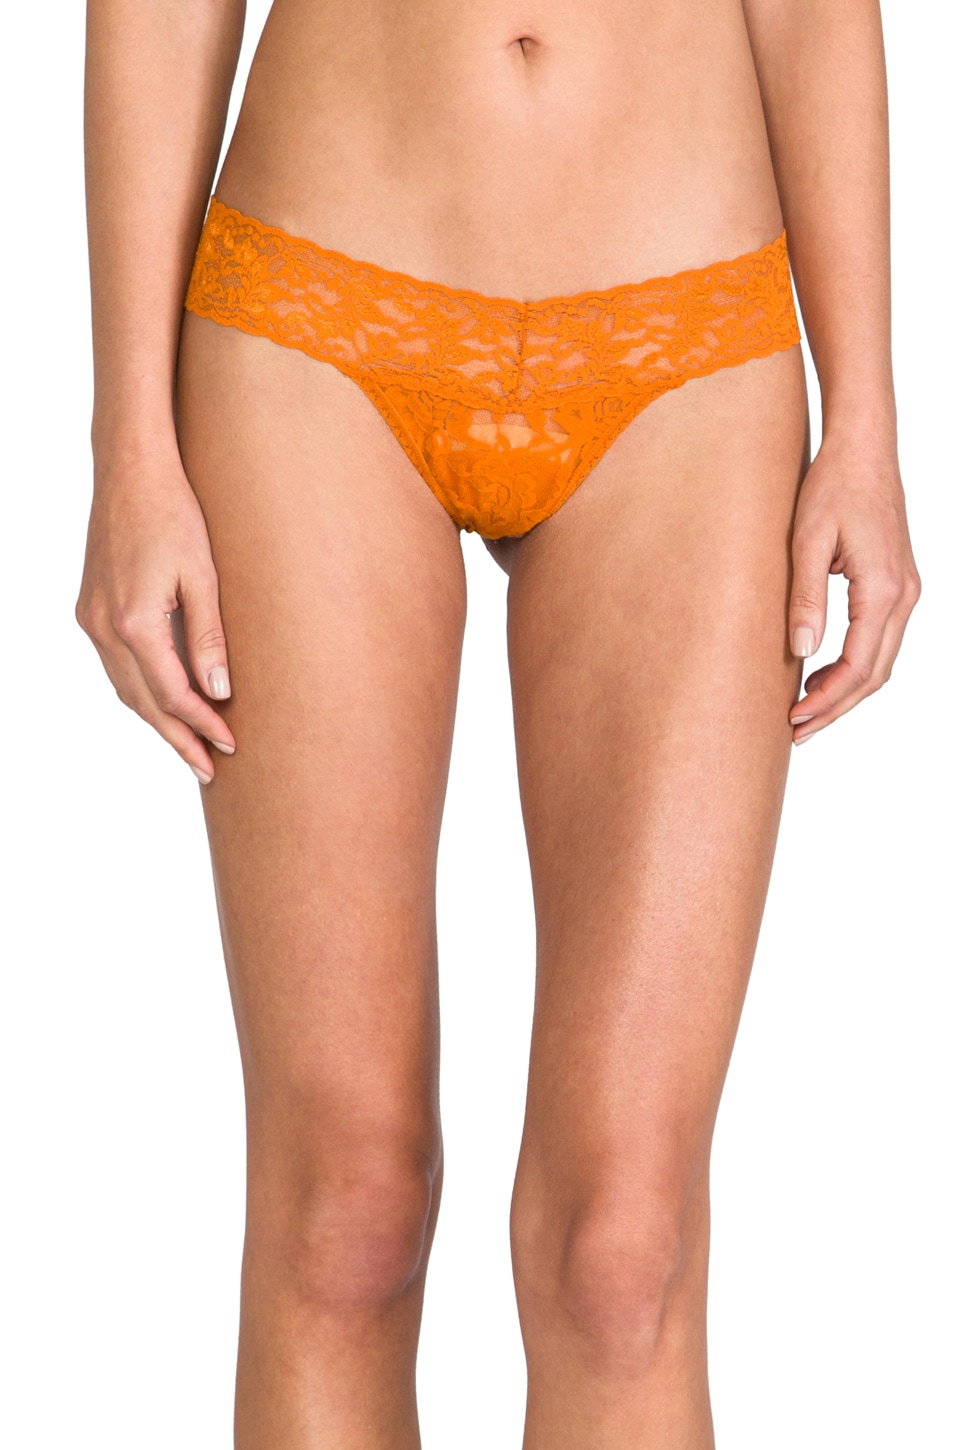 Hanky Panky Low Rise Thong in Marigold